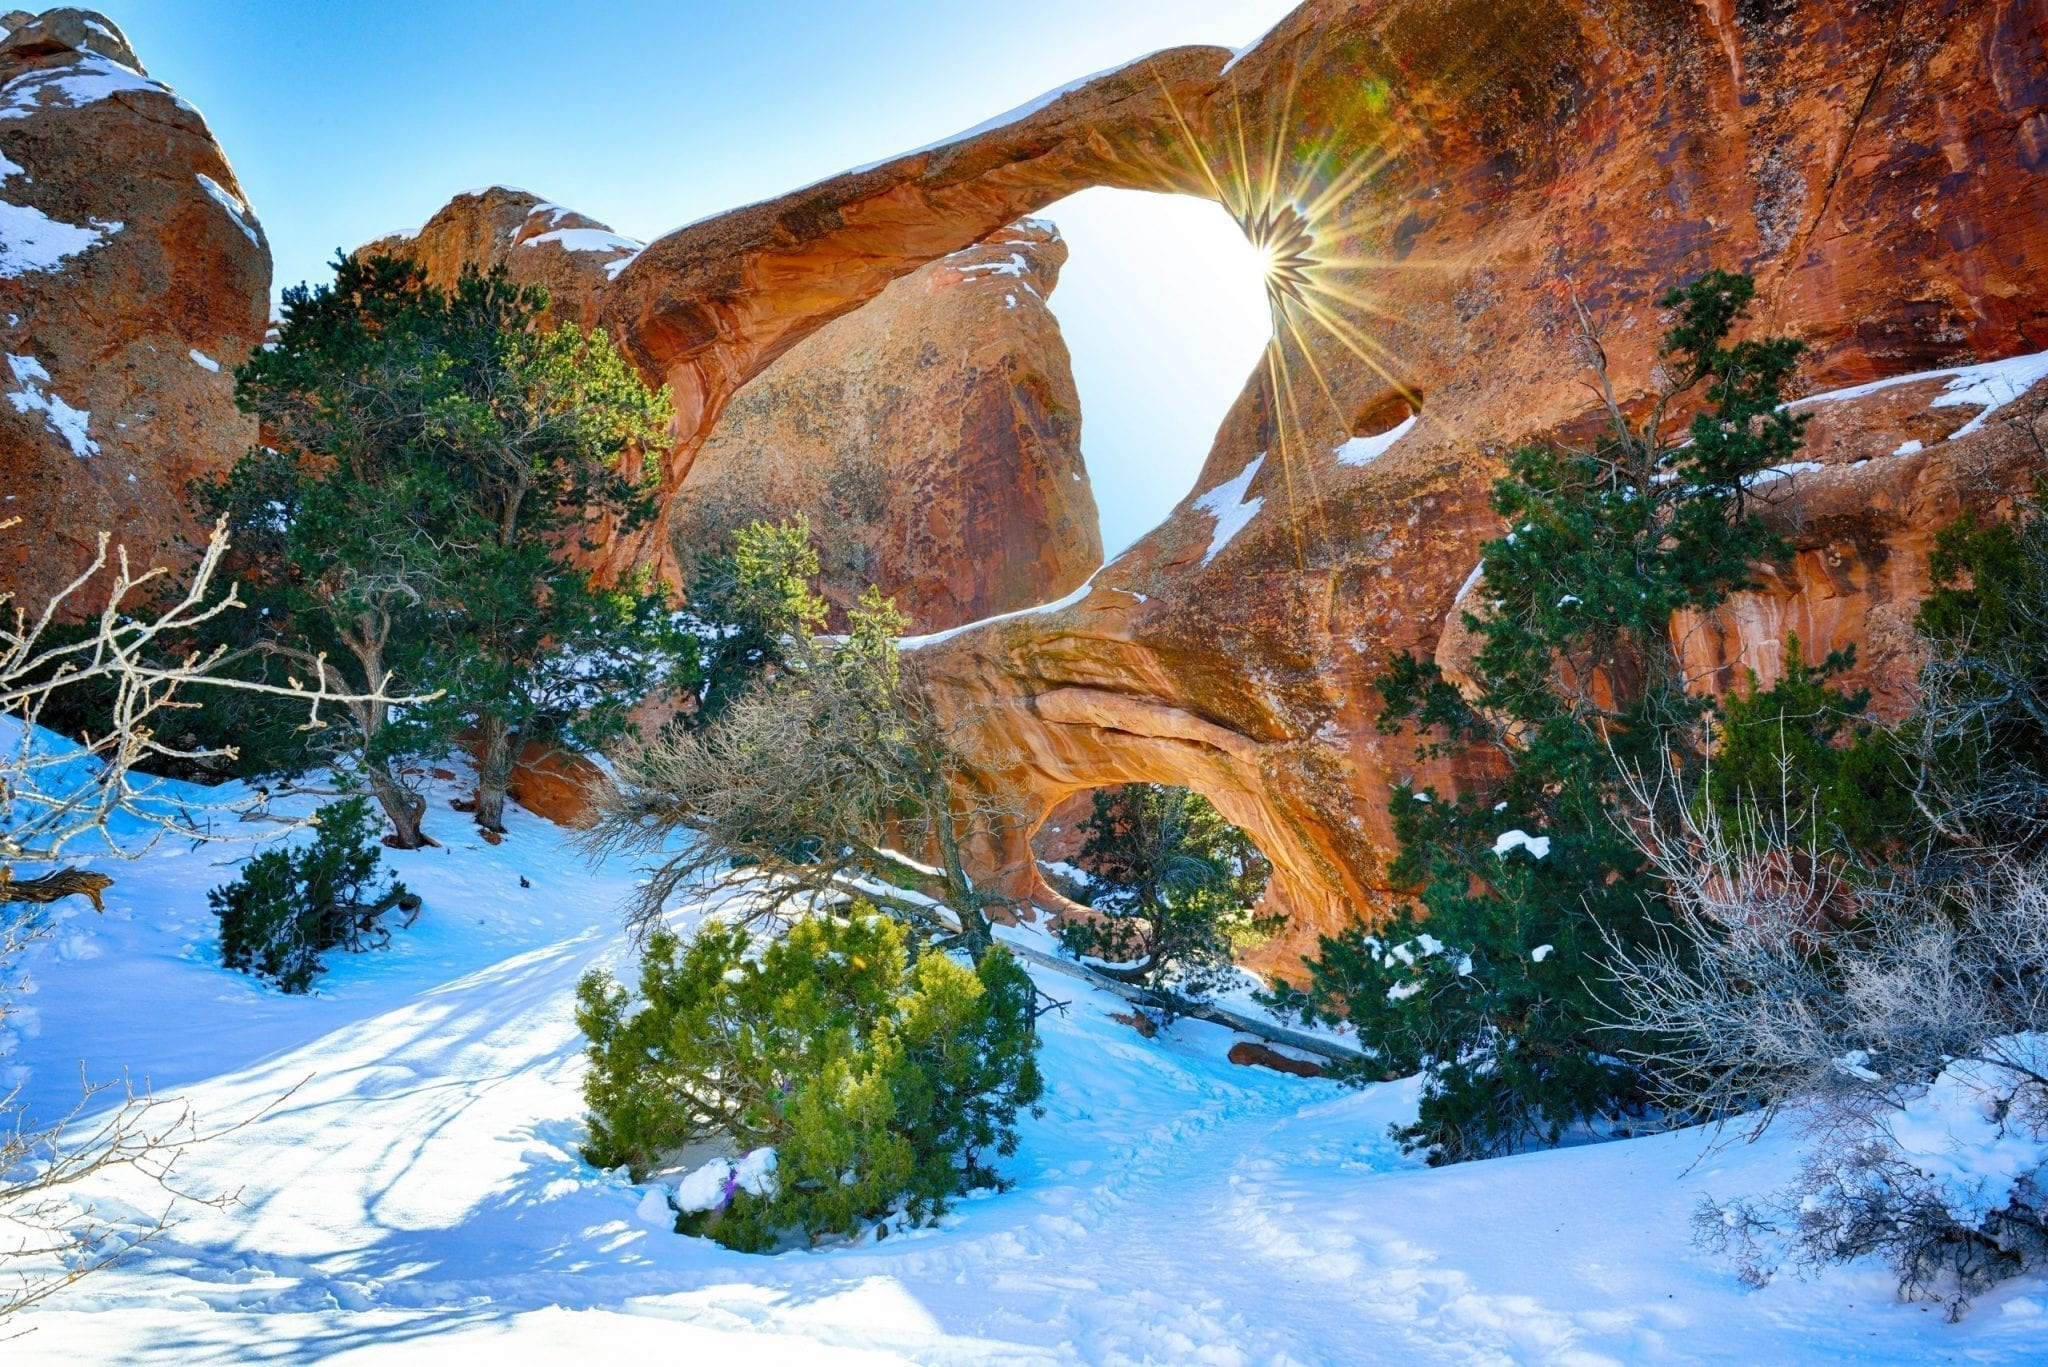 Arch in Arches NP with a sun flare and snow on the ground. arches in winter usa national parks to visit